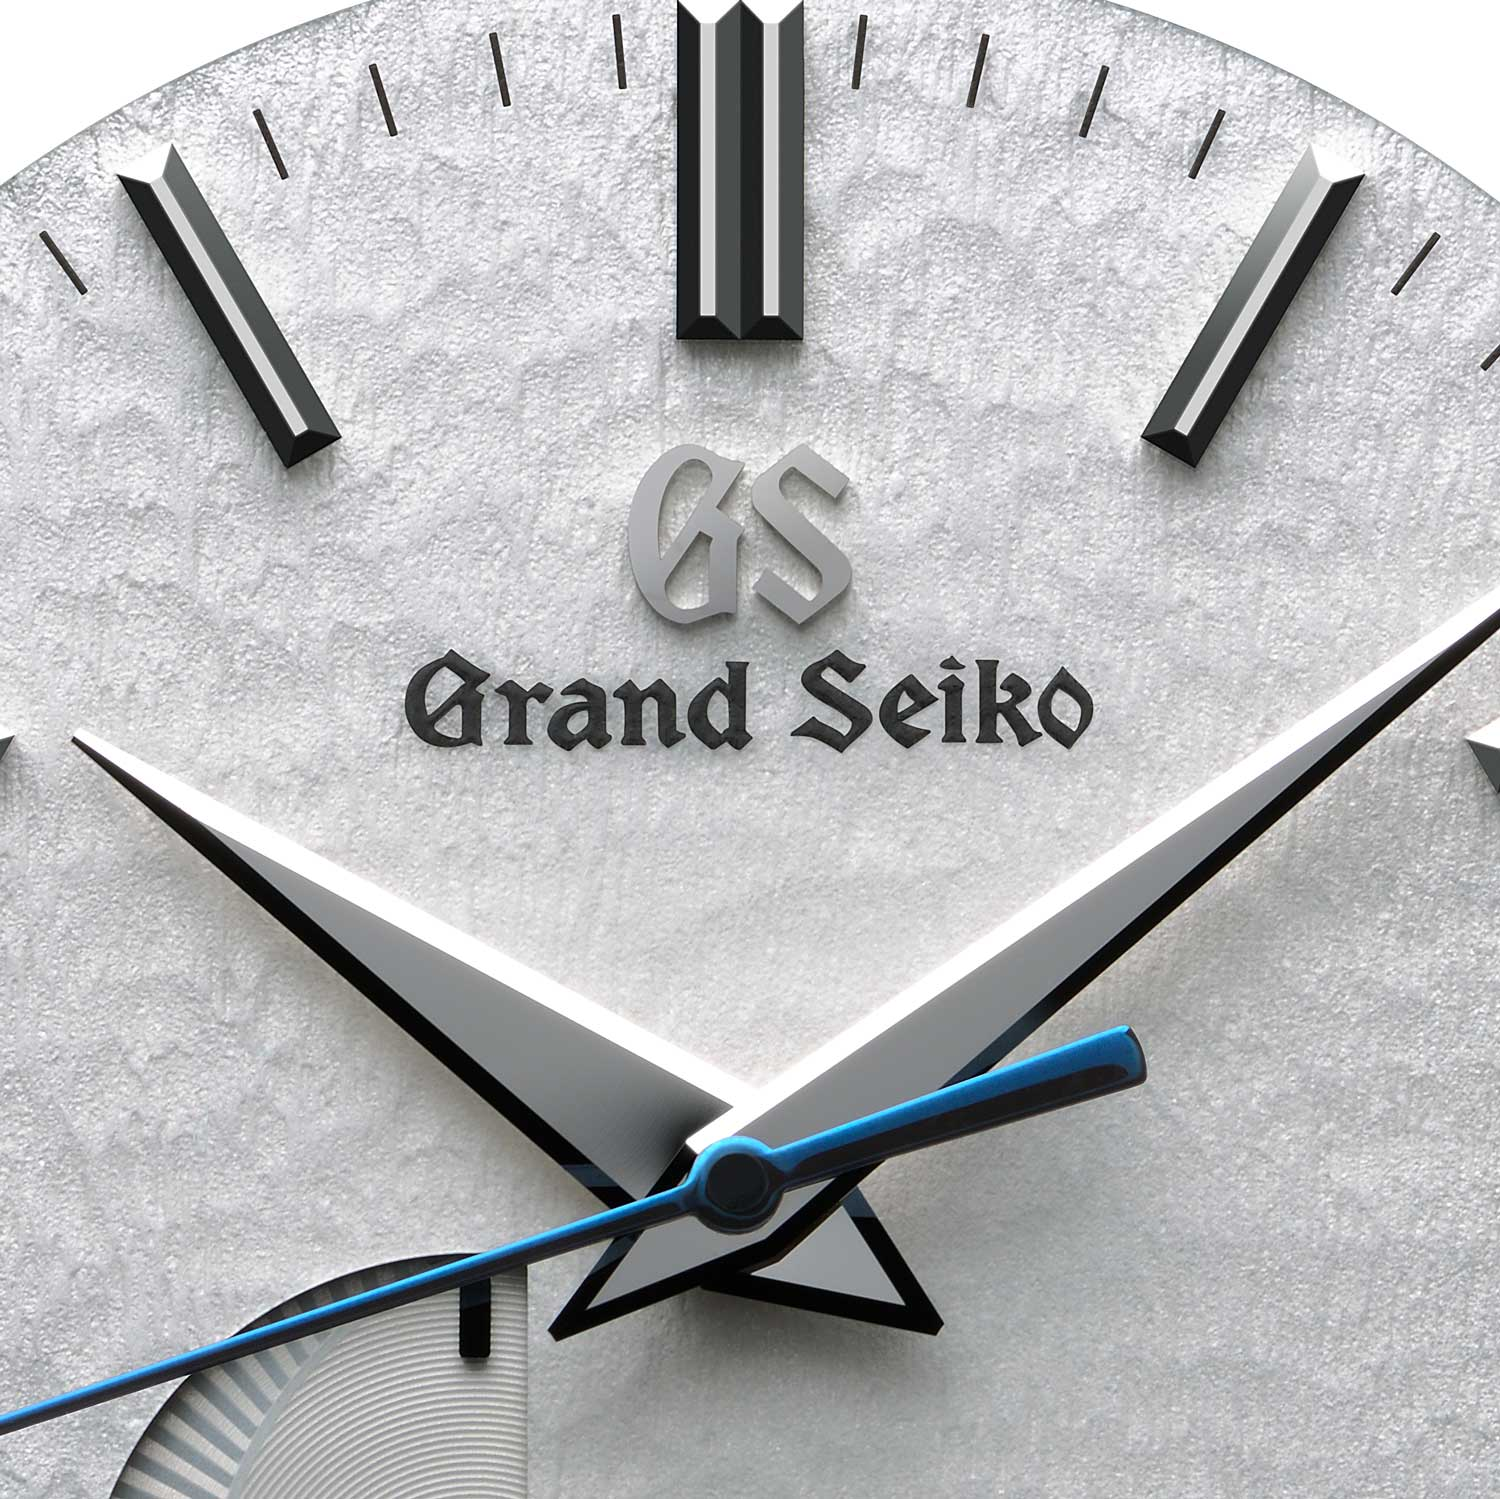 The incredible 'Snowflake' dial of the Grand Seiko Spring Drive 'Snowflake' SBGA211 (Image: Grand Seiko)